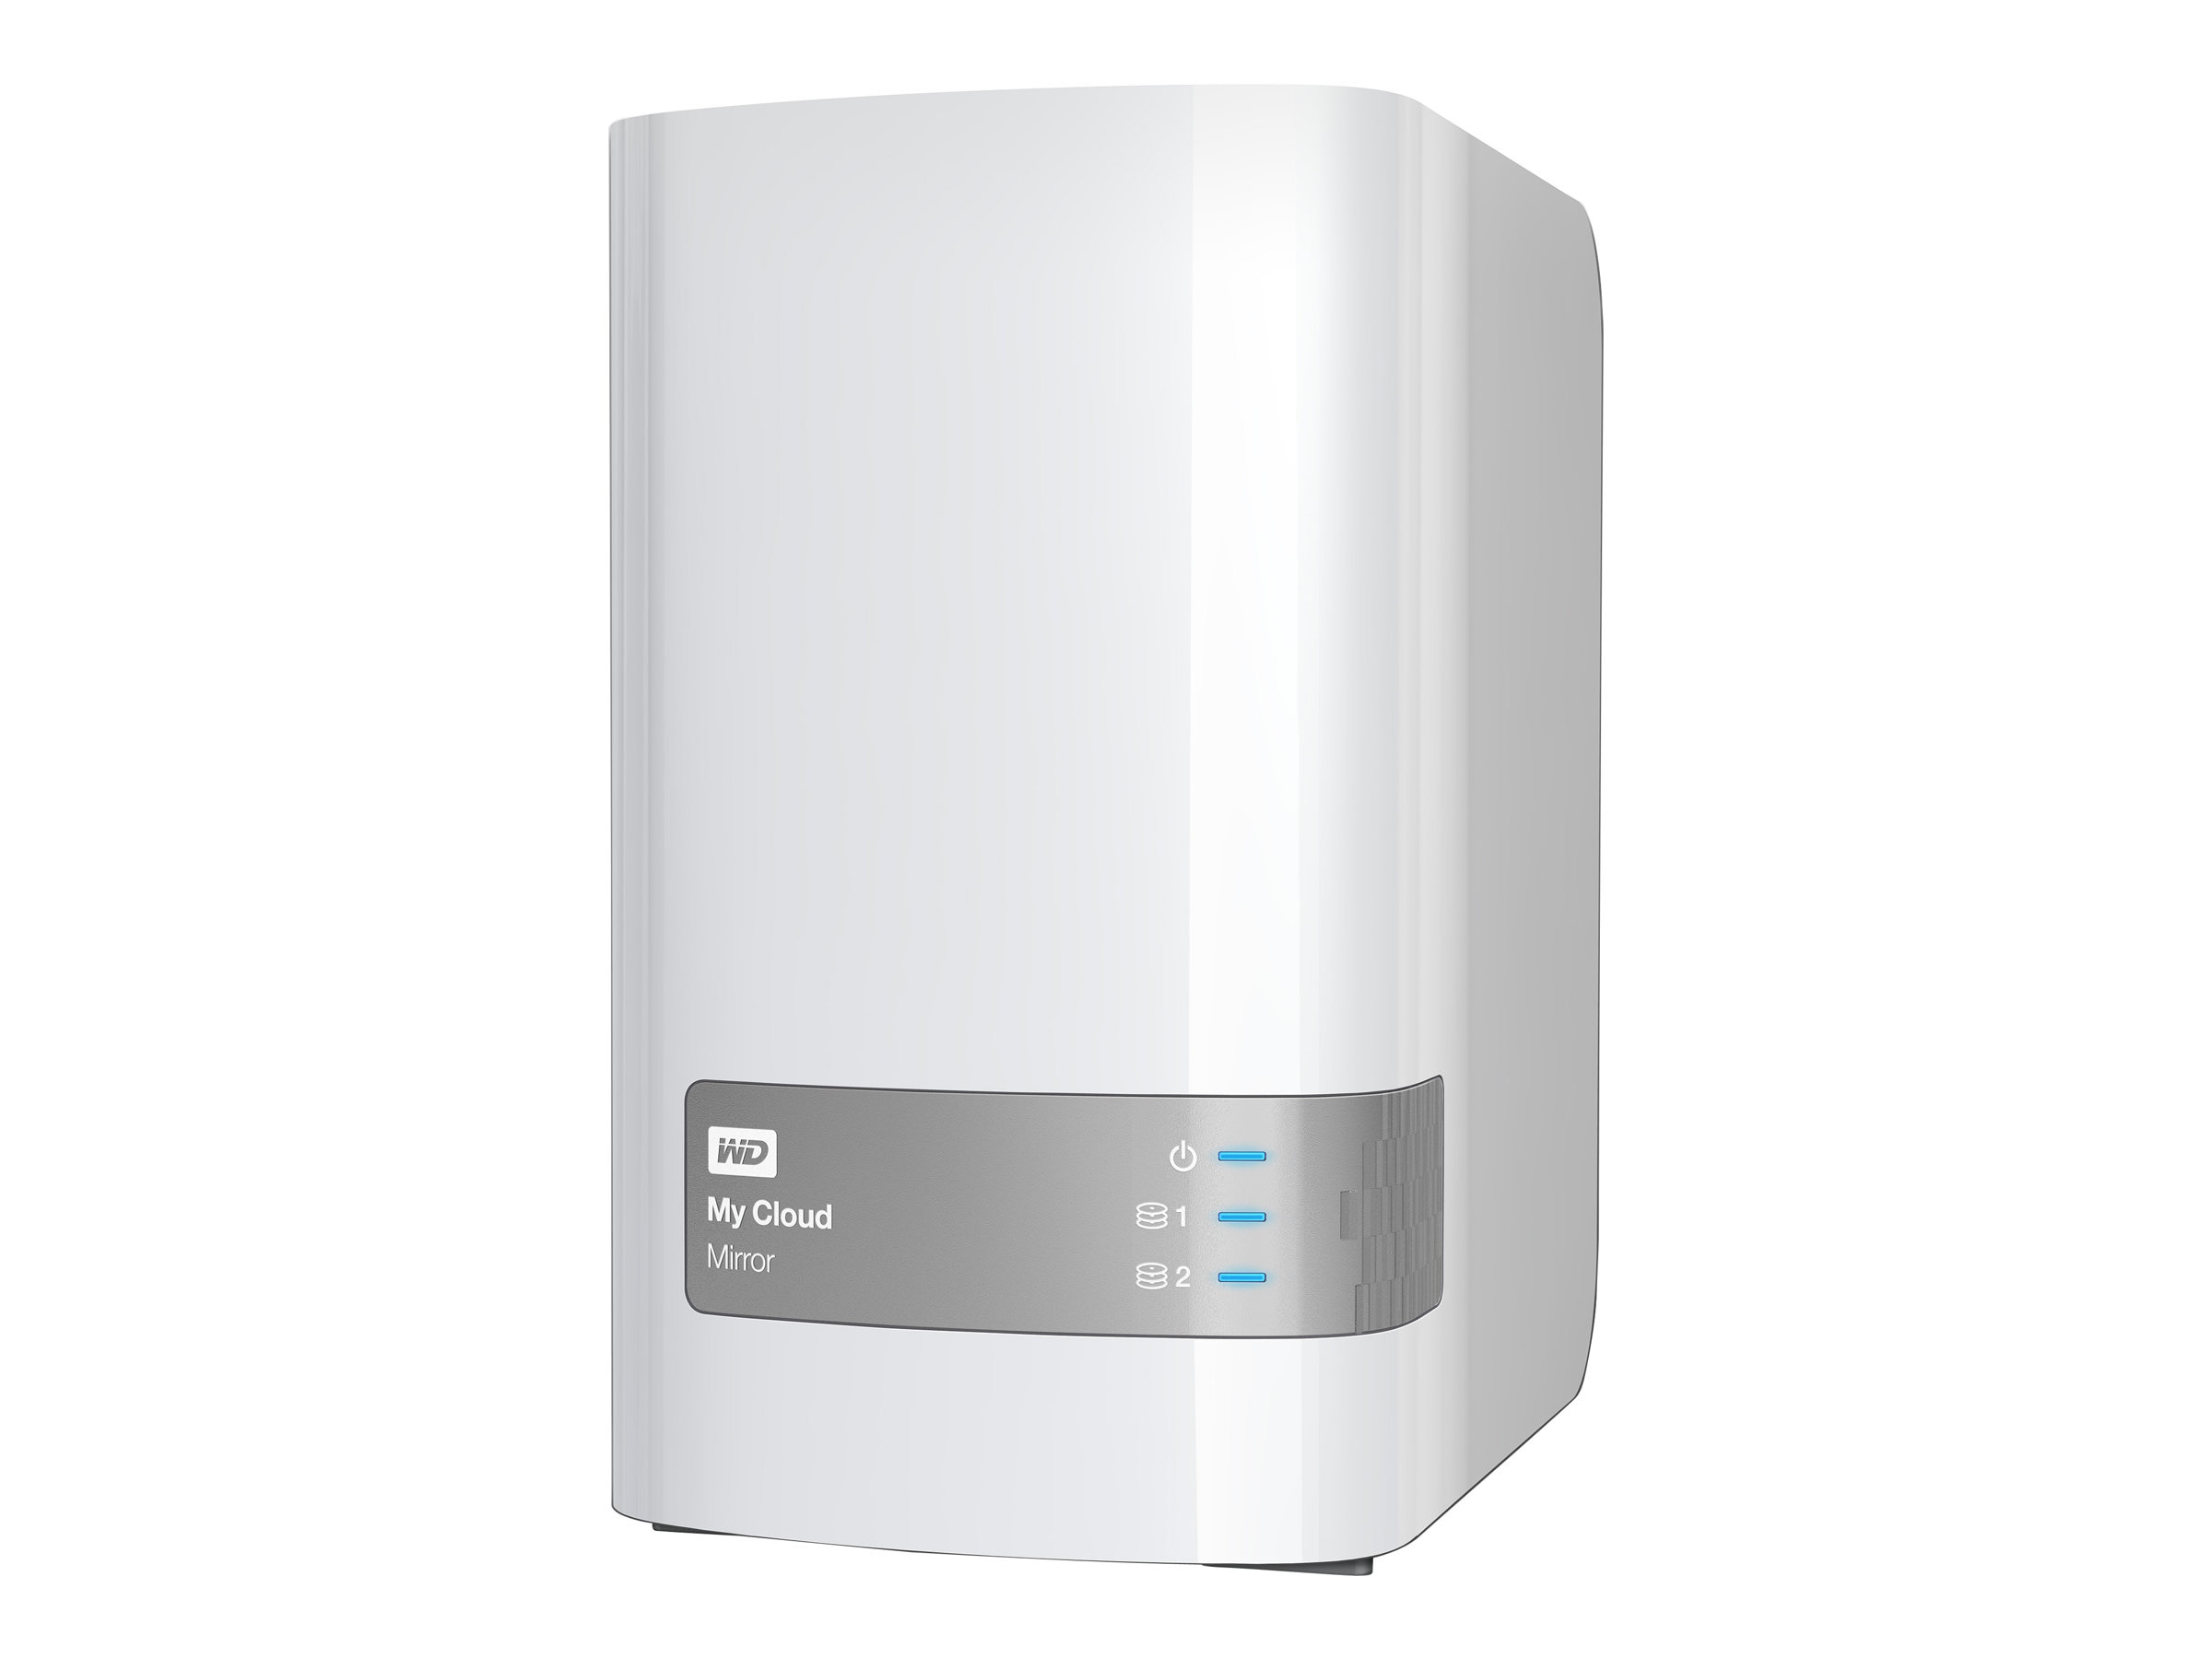 WD 6TB My Cloud Mirror Personal Cloud Storage, WDBZVM0060JWT-NESN, 17376830, Network Attached Storage